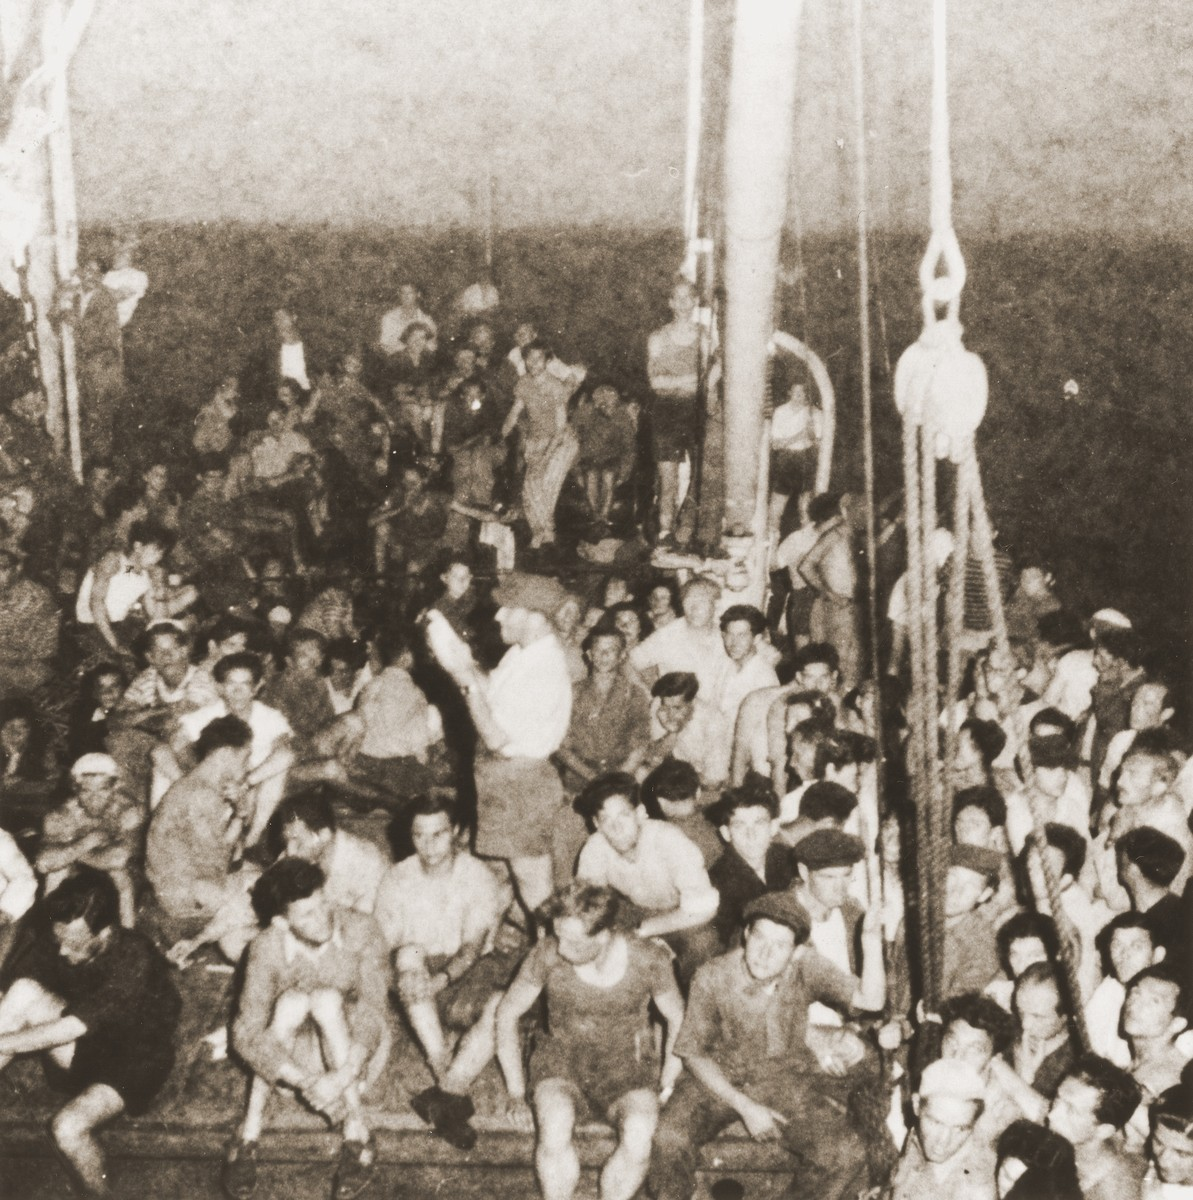 Passengers crowd the deck of the the Mala immigrant ship en route to the new State of Israel.